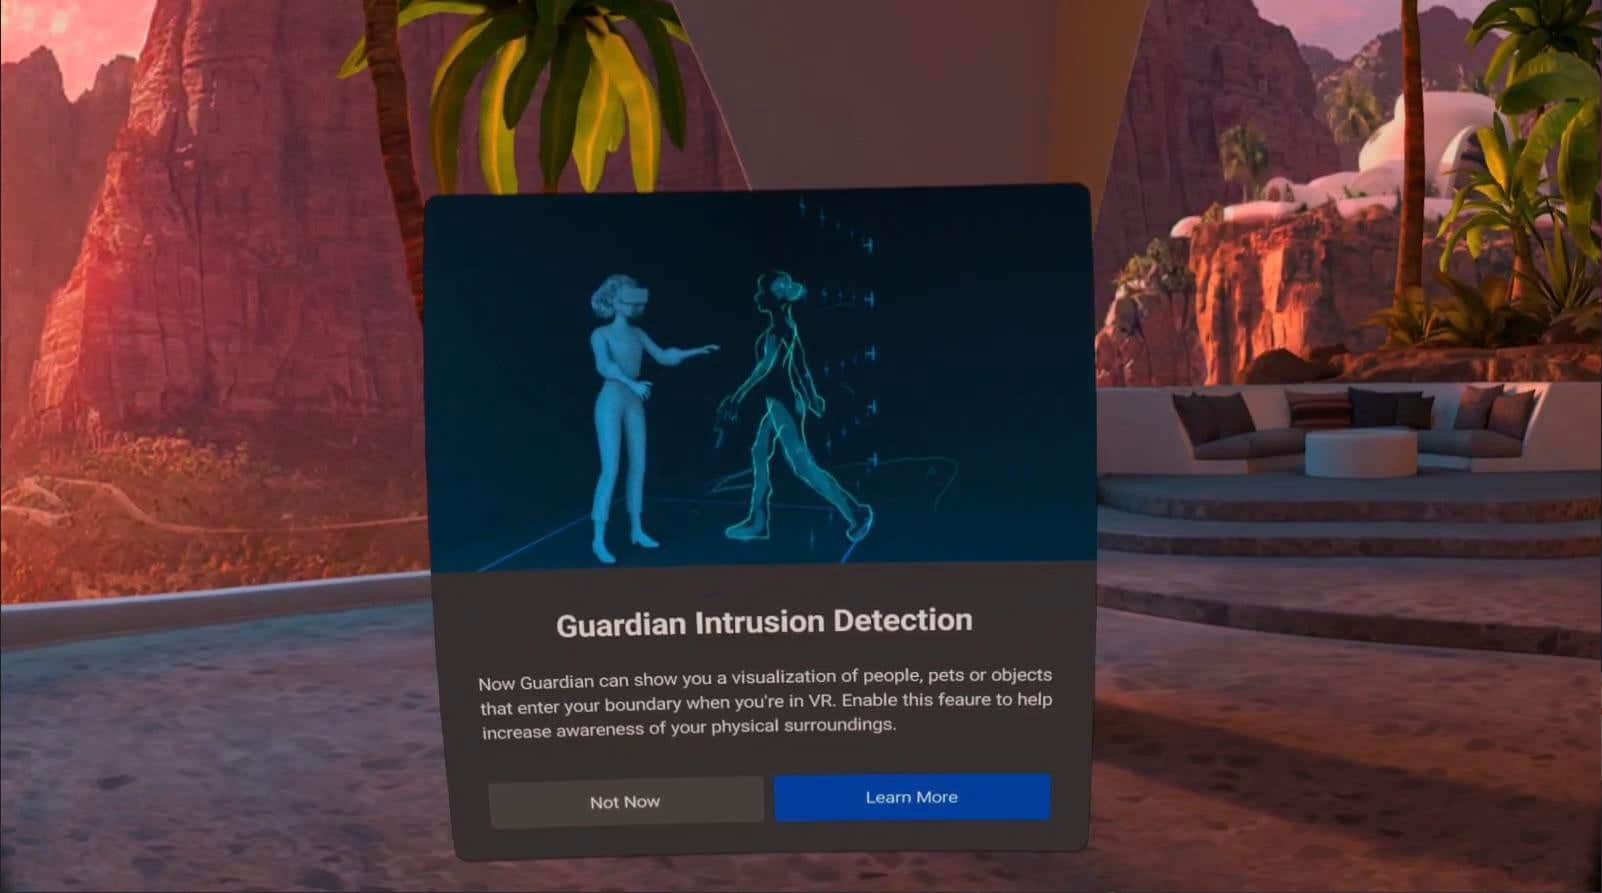 'Guardian Intrusion Detection' Coming To Oculus Quest?